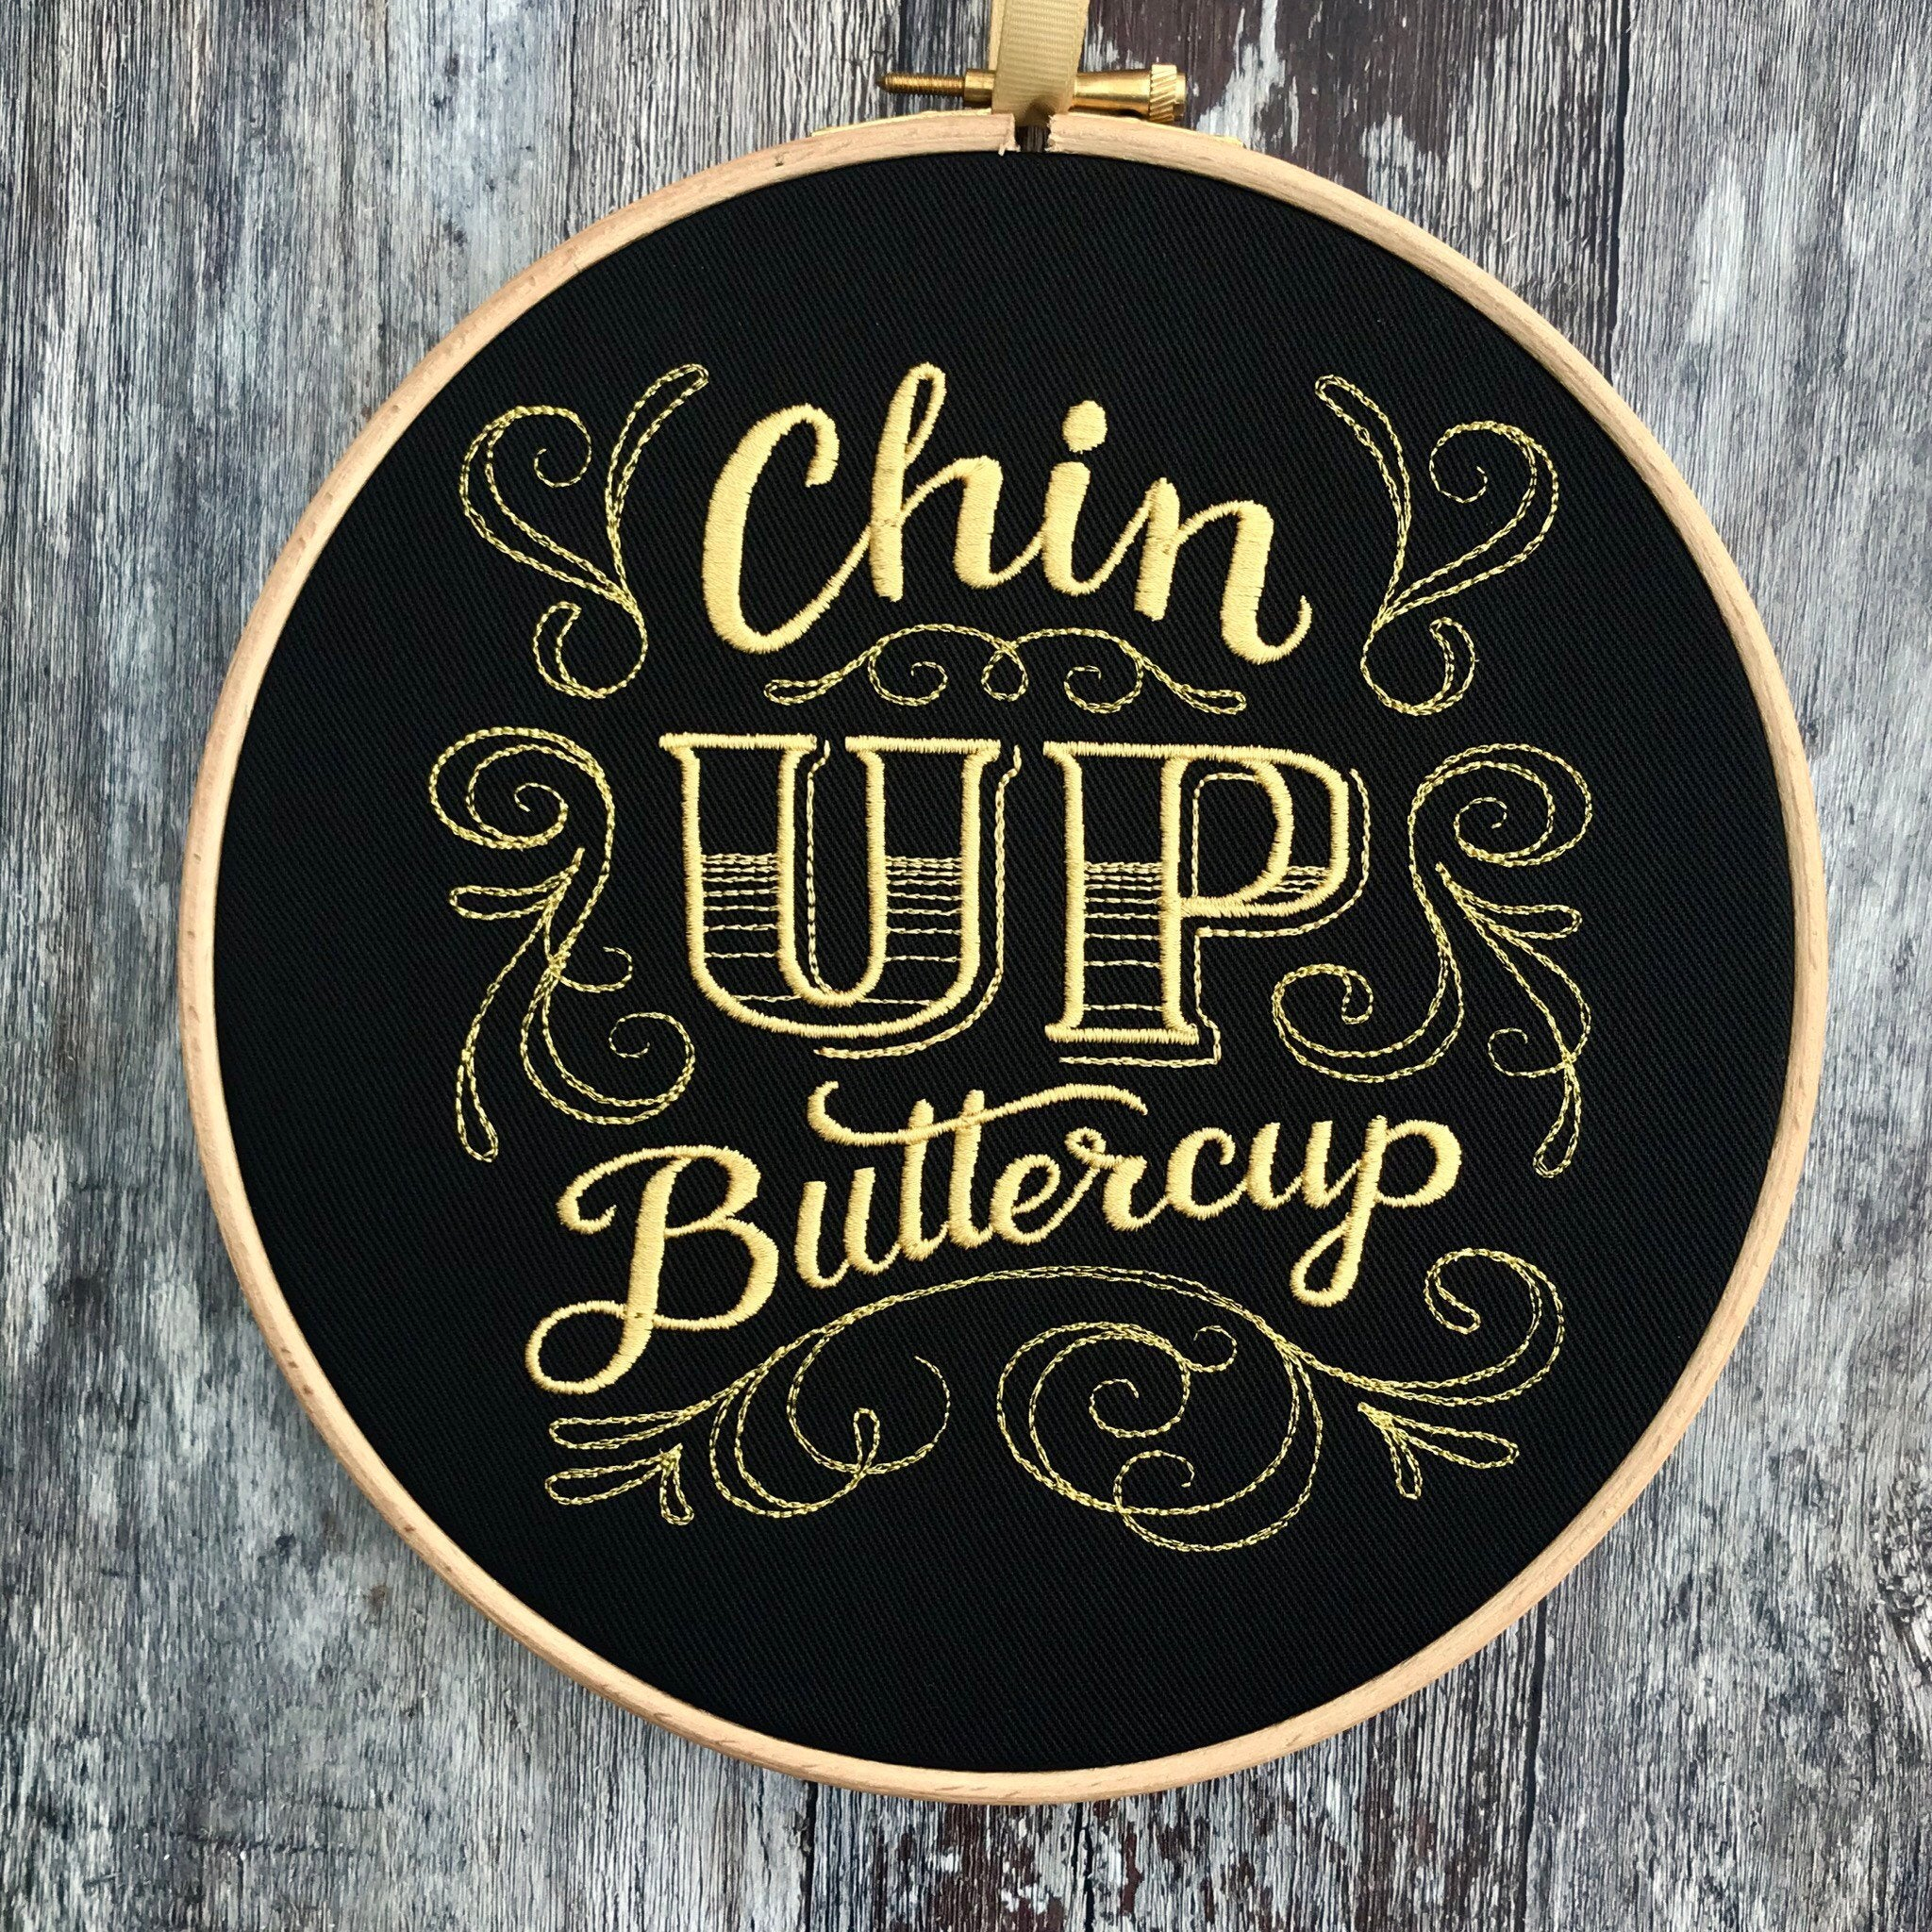 Chin up buttercup, Embroidery hoop art